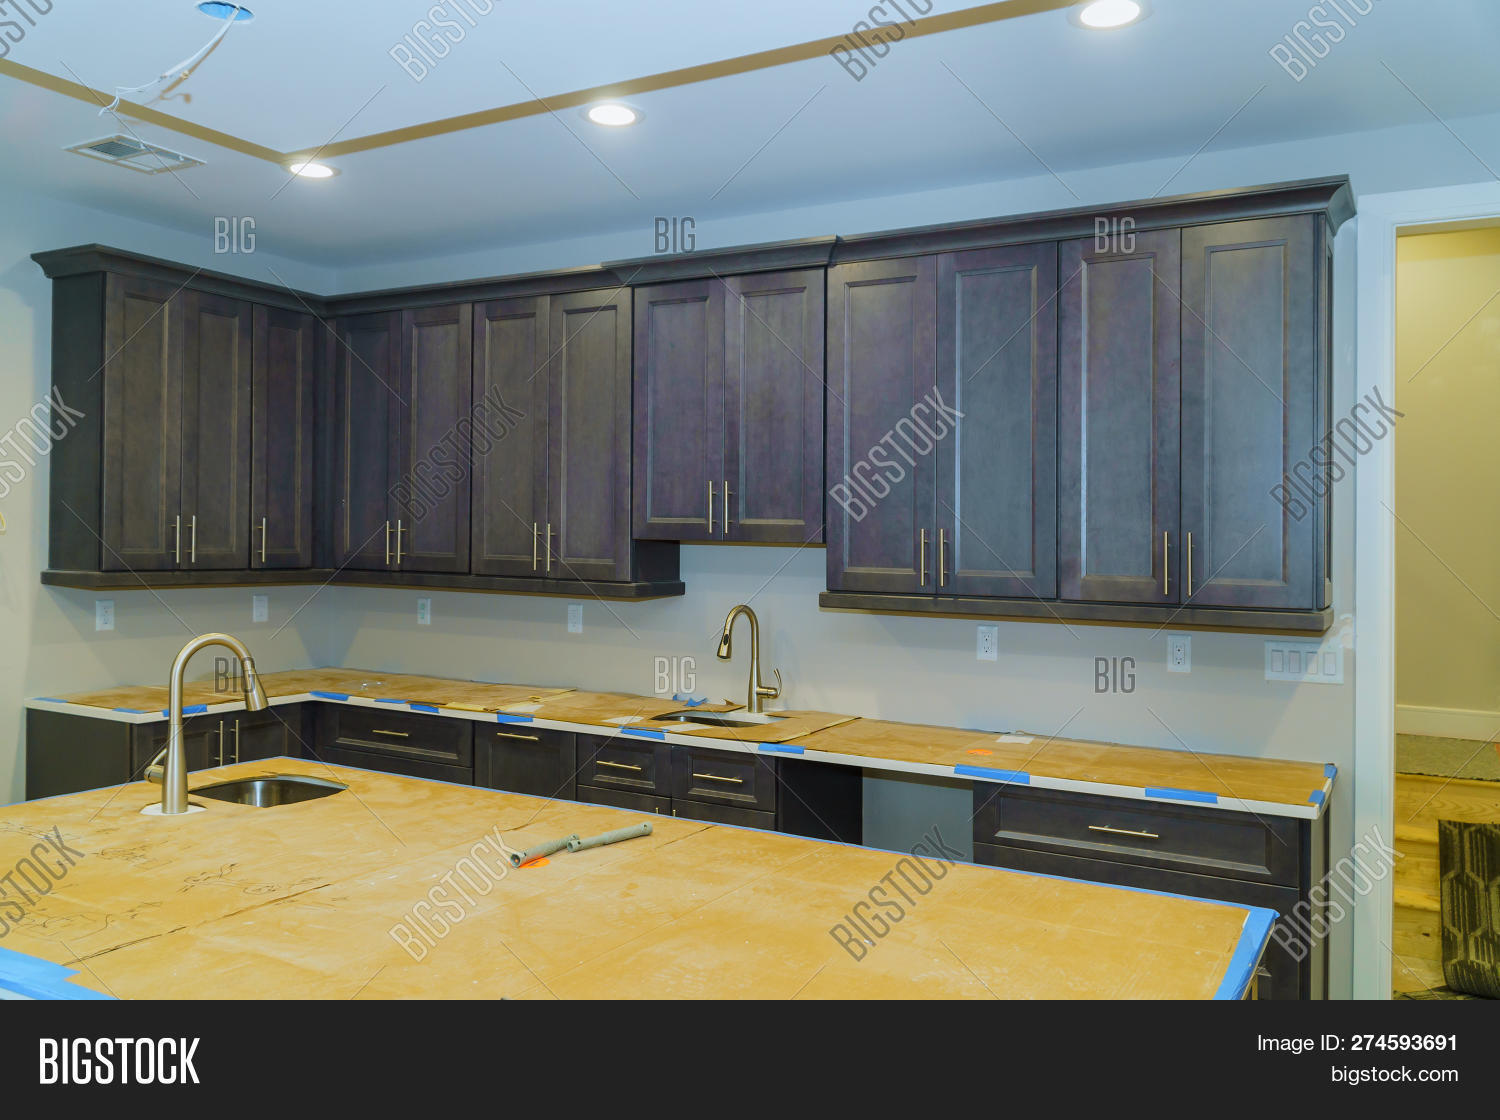 Kitchen Cabinets Image & Photo (Free Trial) | Bigstock